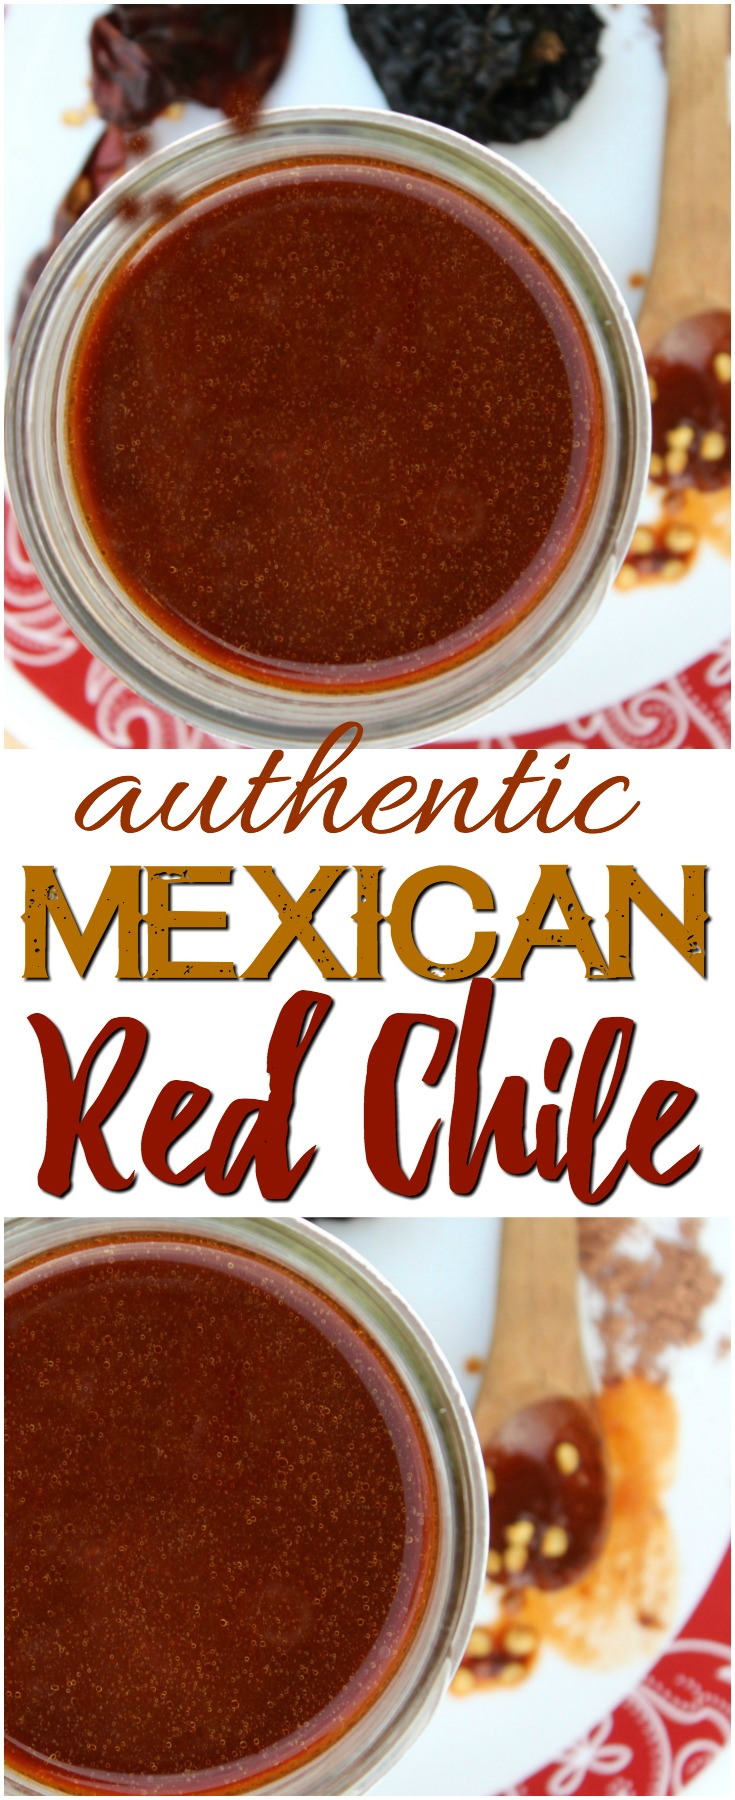 Authentic Mexican Red Chile Sauce